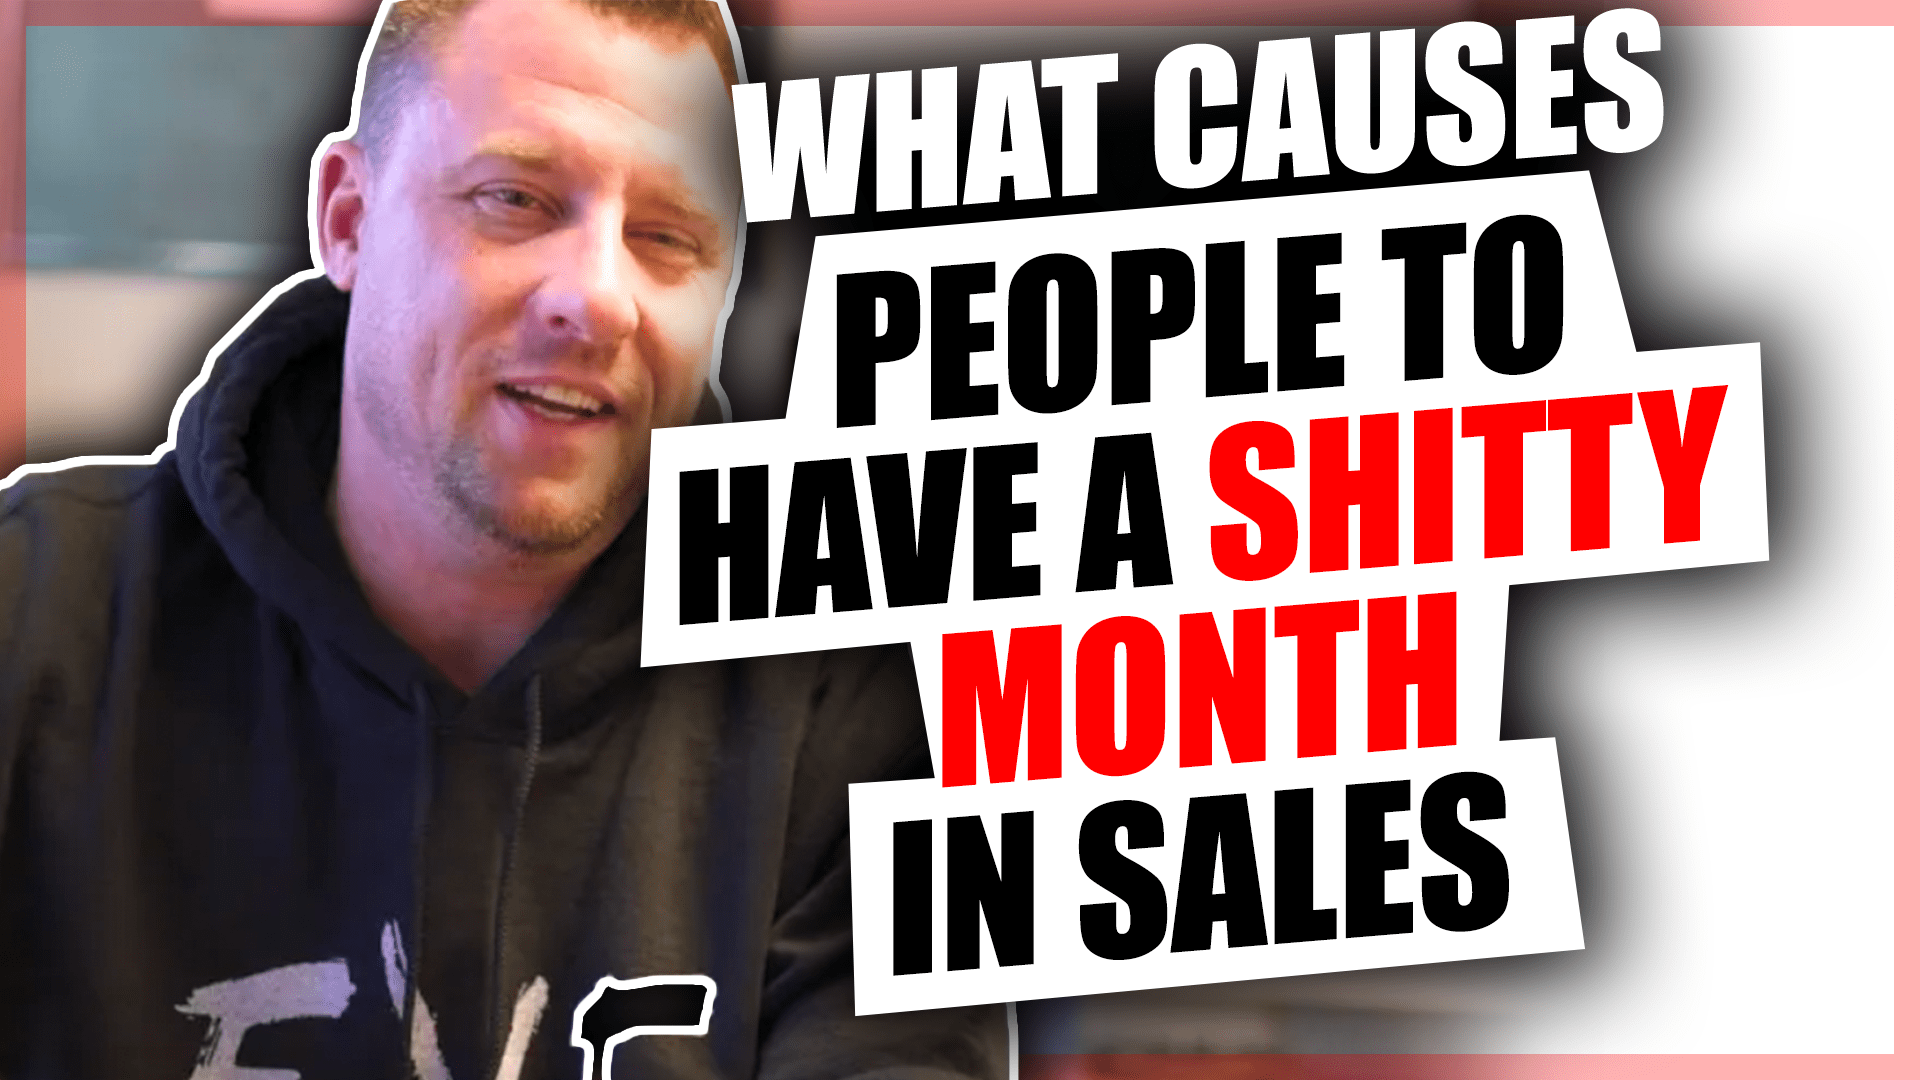 Causes people to have a shitty month sales